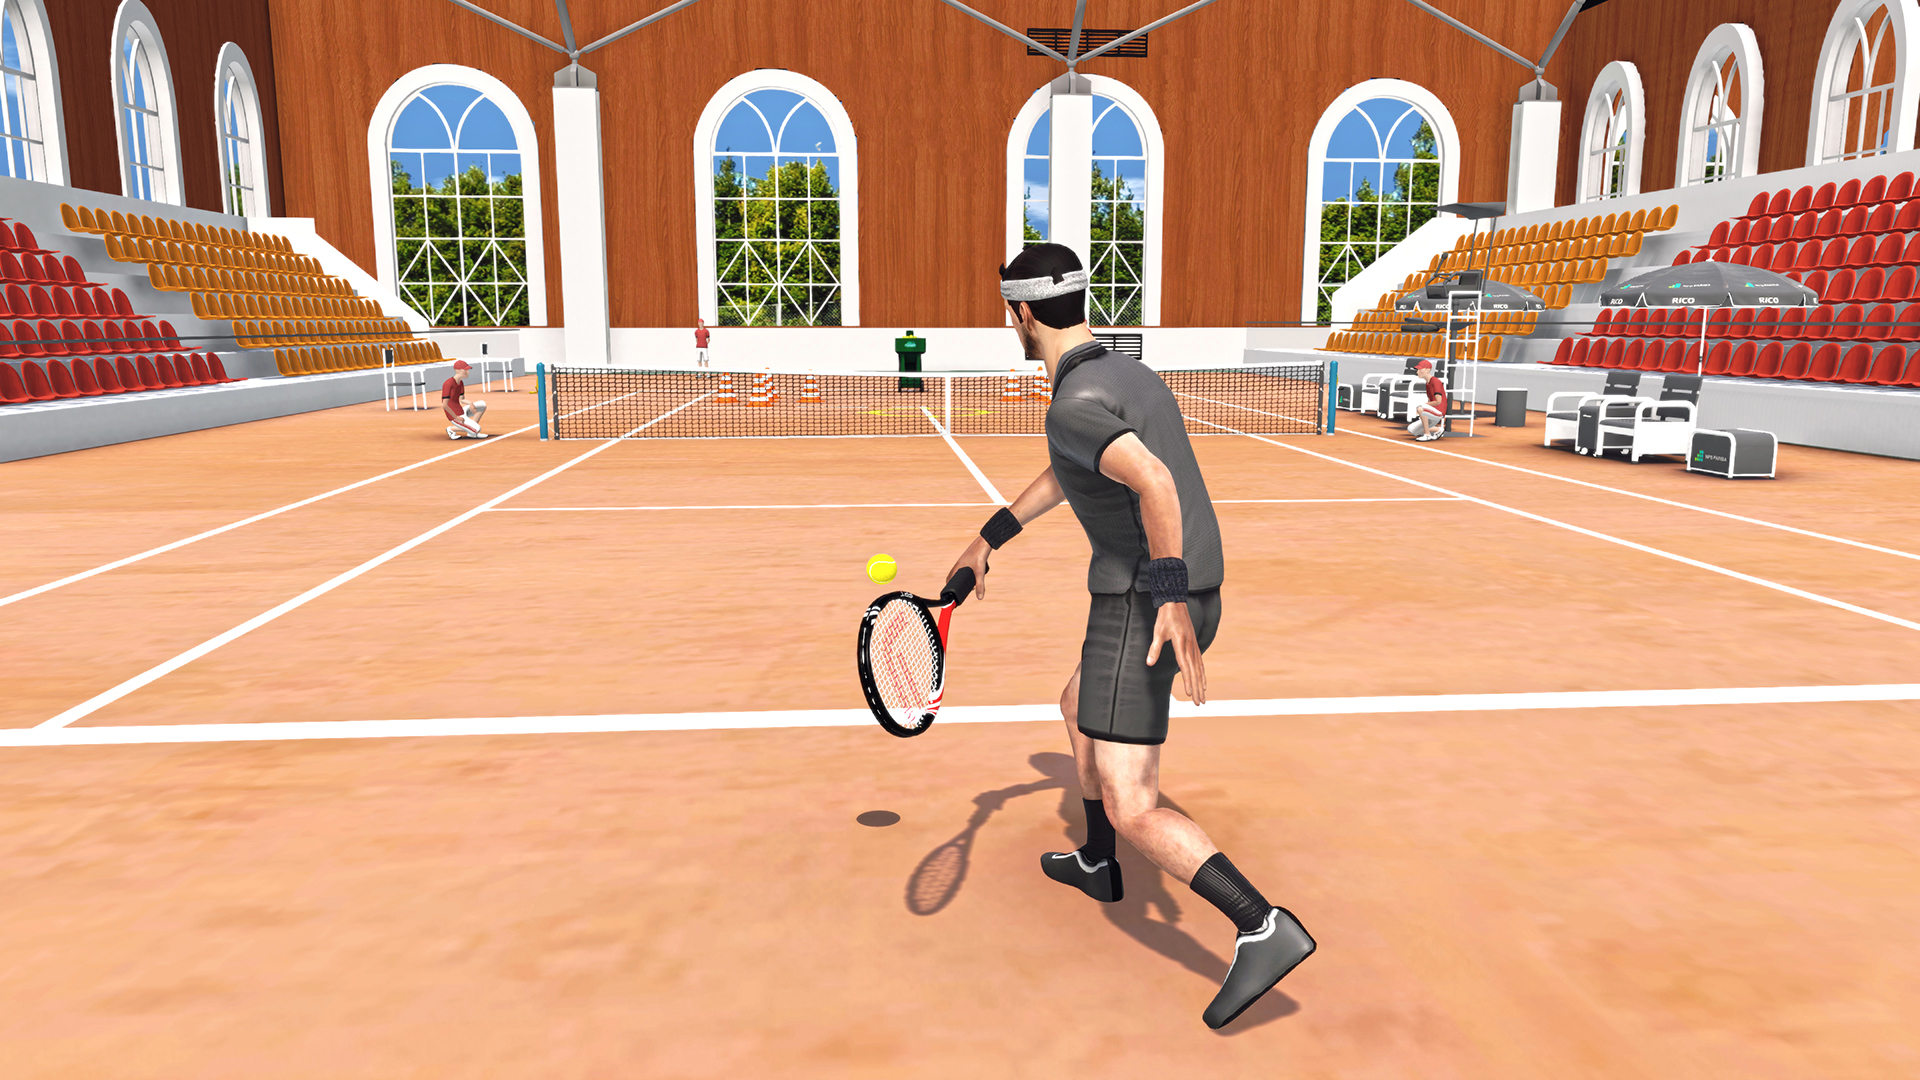 First Person Tennis – The Real Tennis Simulator